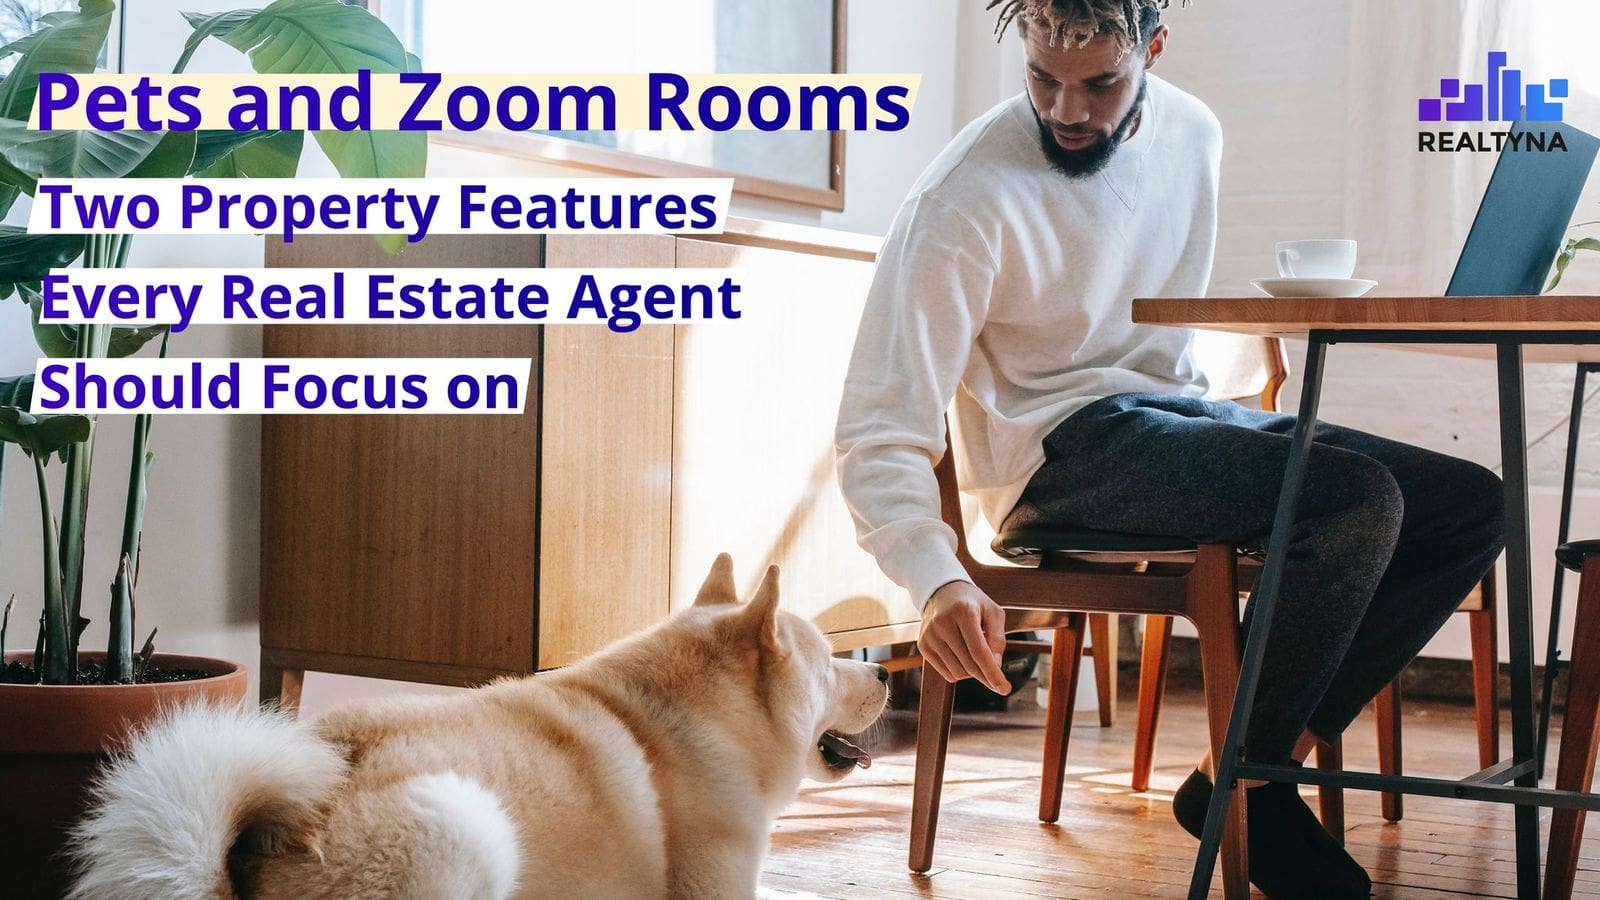 Pets and Zoom Rooms, Two Property Features Every Real Estate Agent Should Focus on